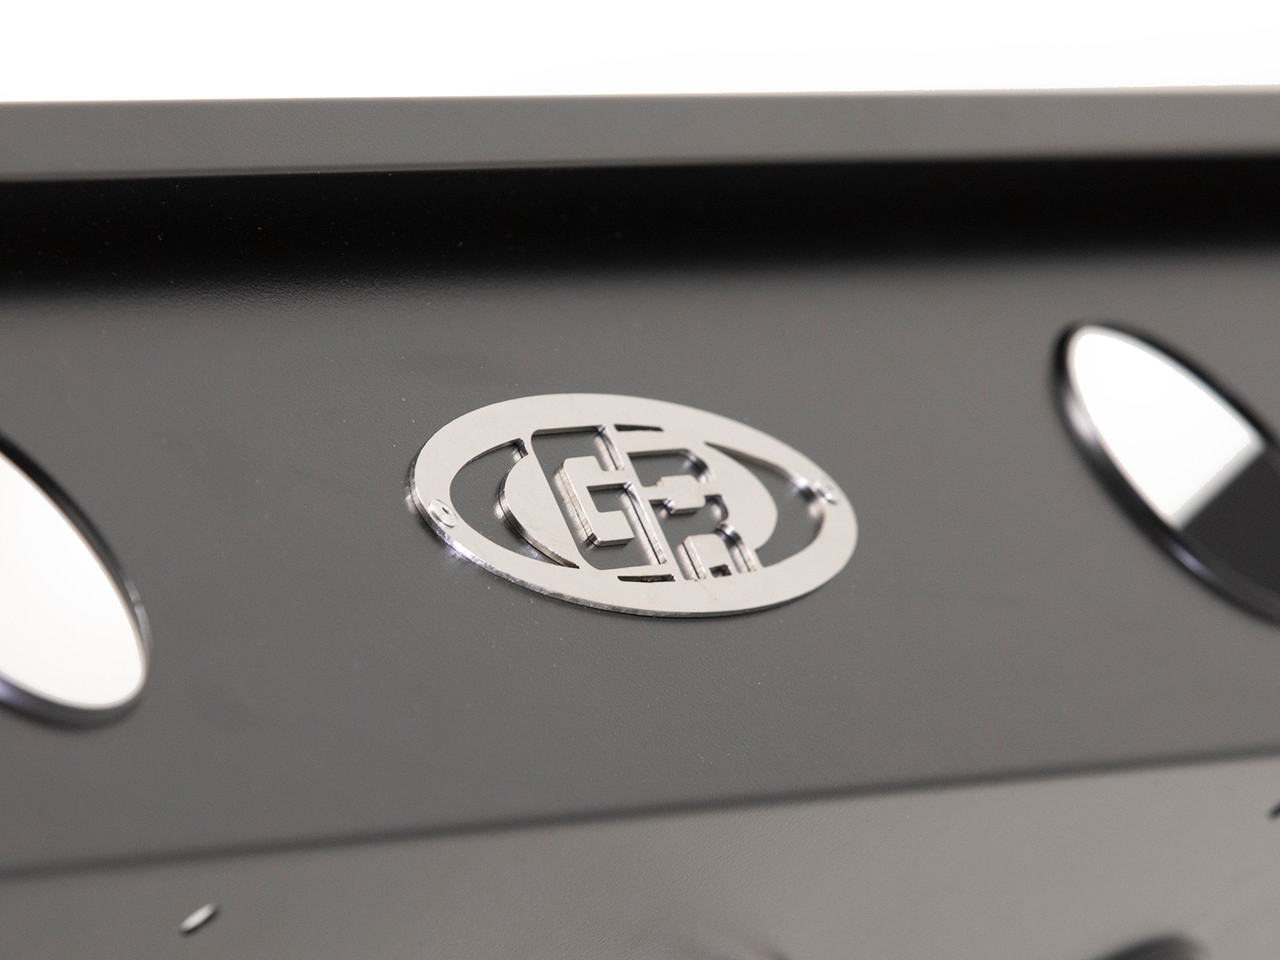 Riveted Aluminum Badge on the black powder coated finish